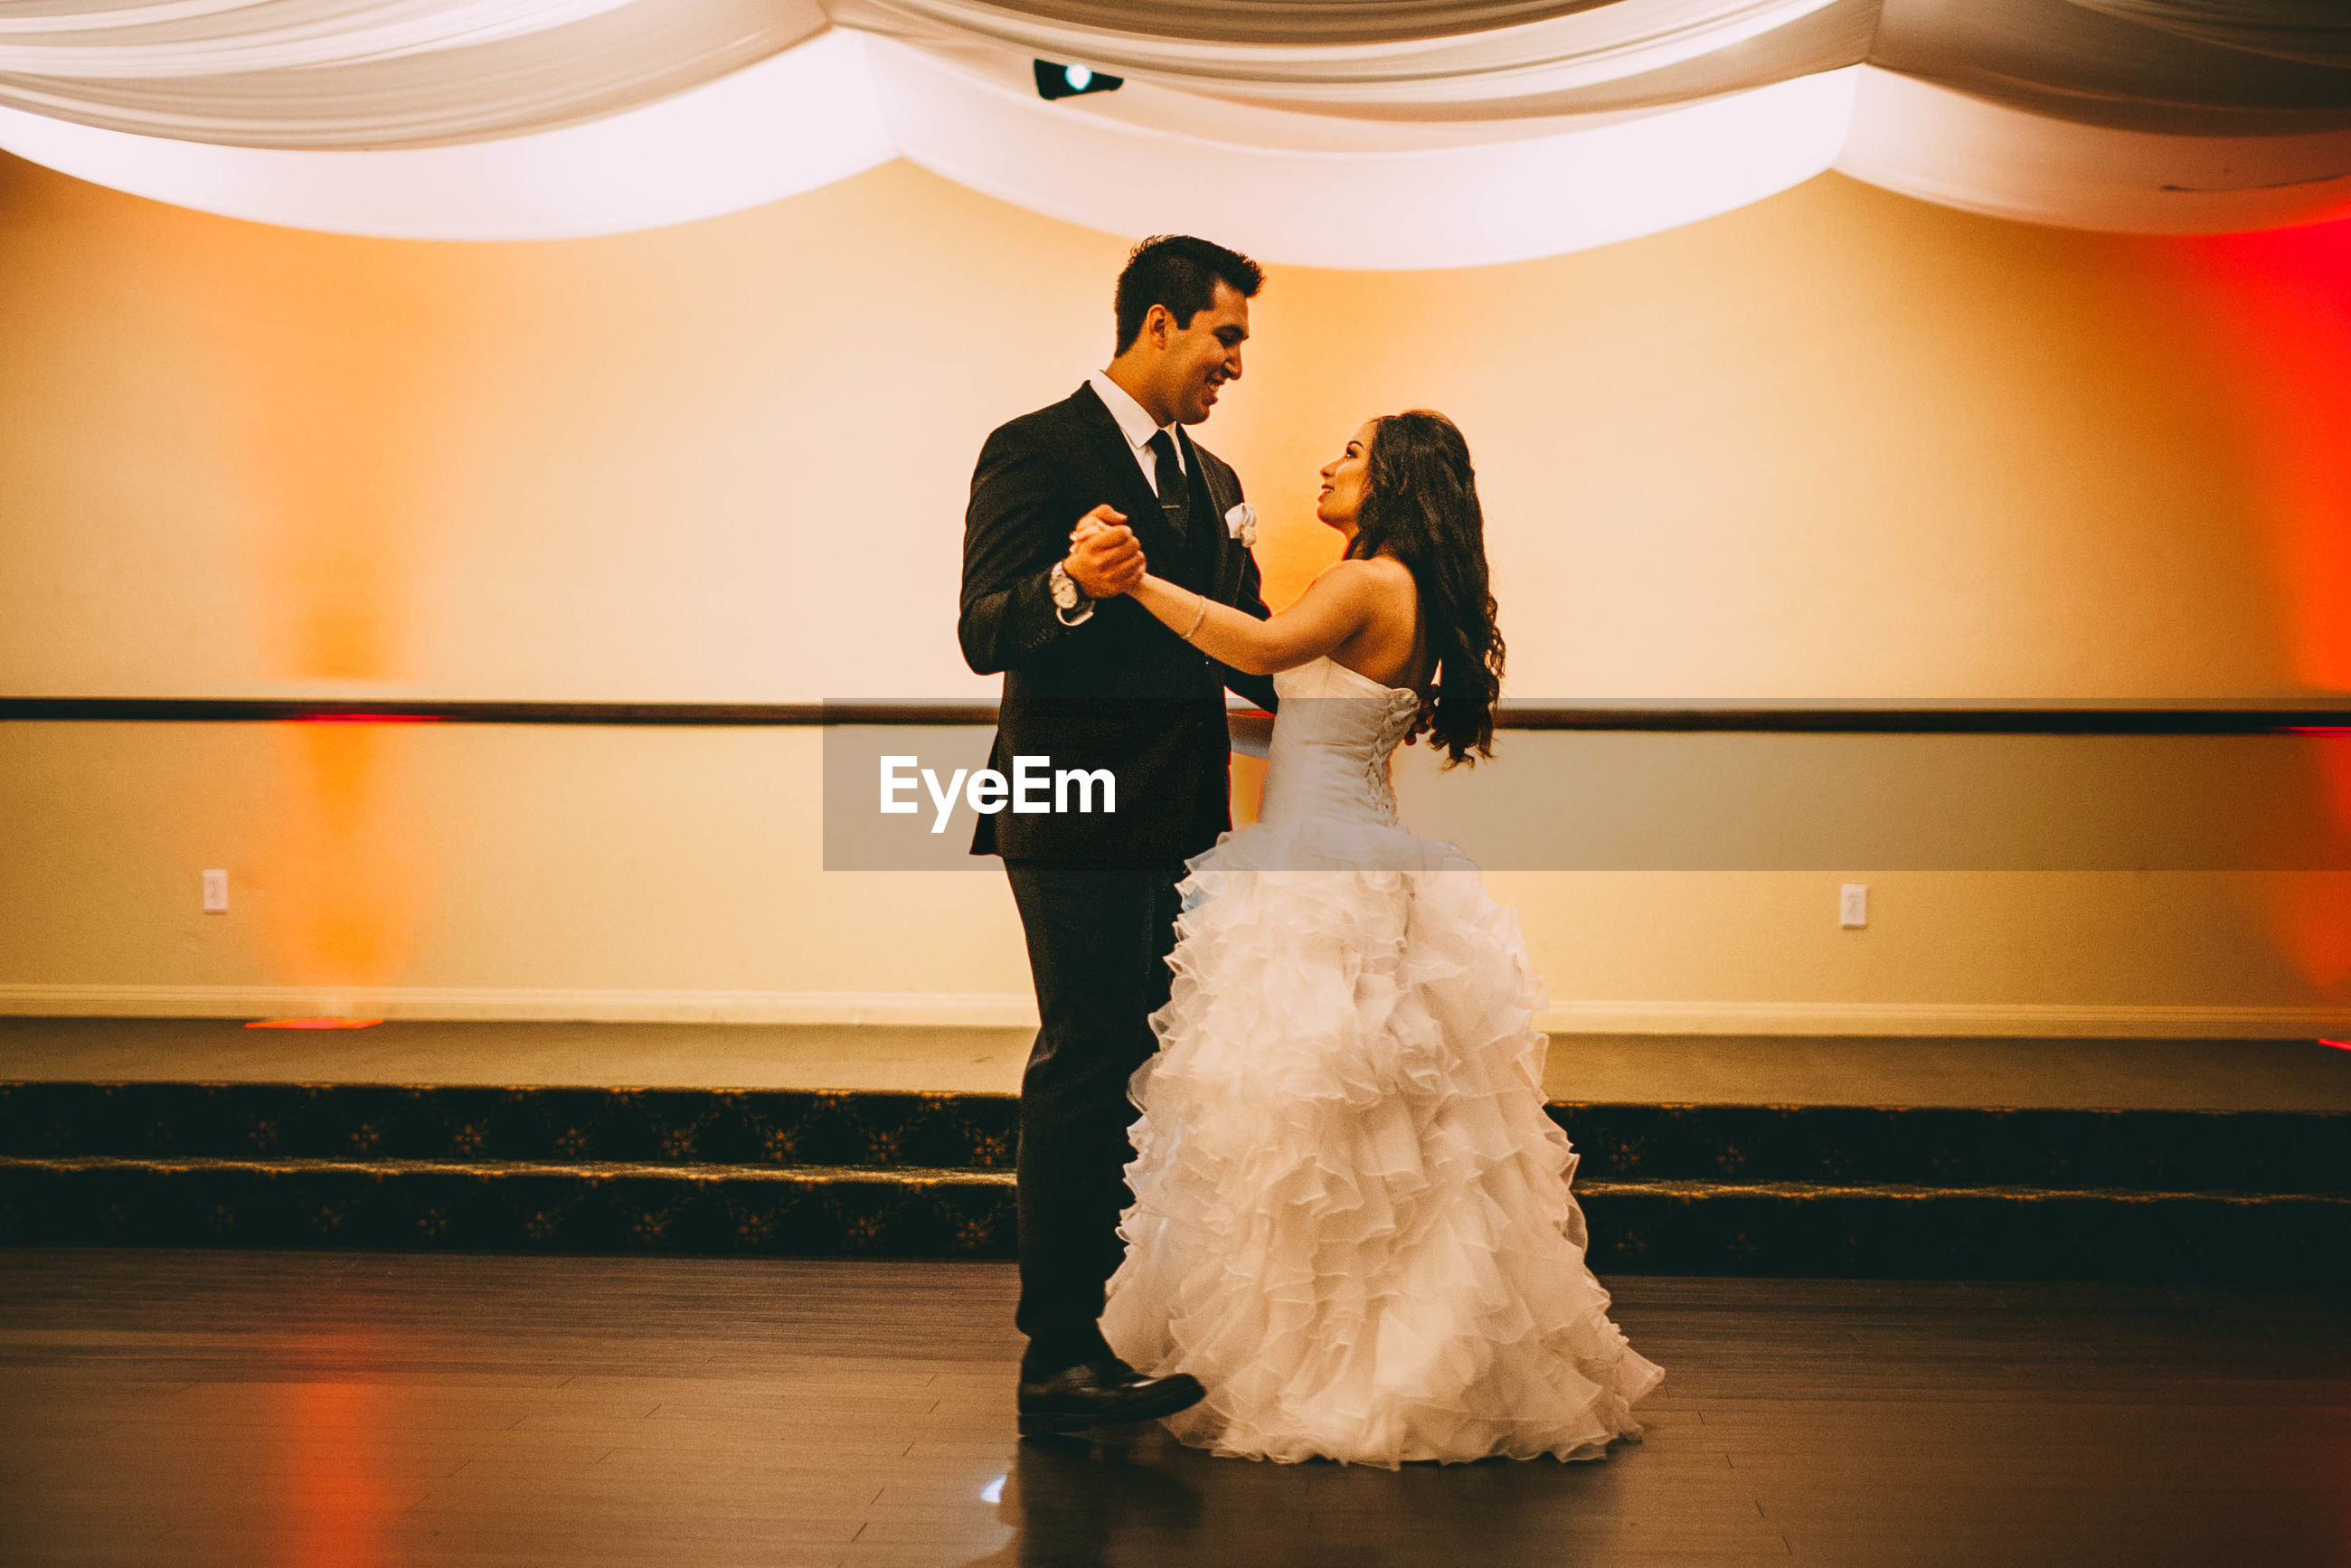 wedding, bride, love, wedding dress, bridegroom, togetherness, life events, celebration, real people, wife, men, women, groom, bonding, young women, husband, indoors, couple - relationship, young adult, young men, married, full length, bouquet, day, people